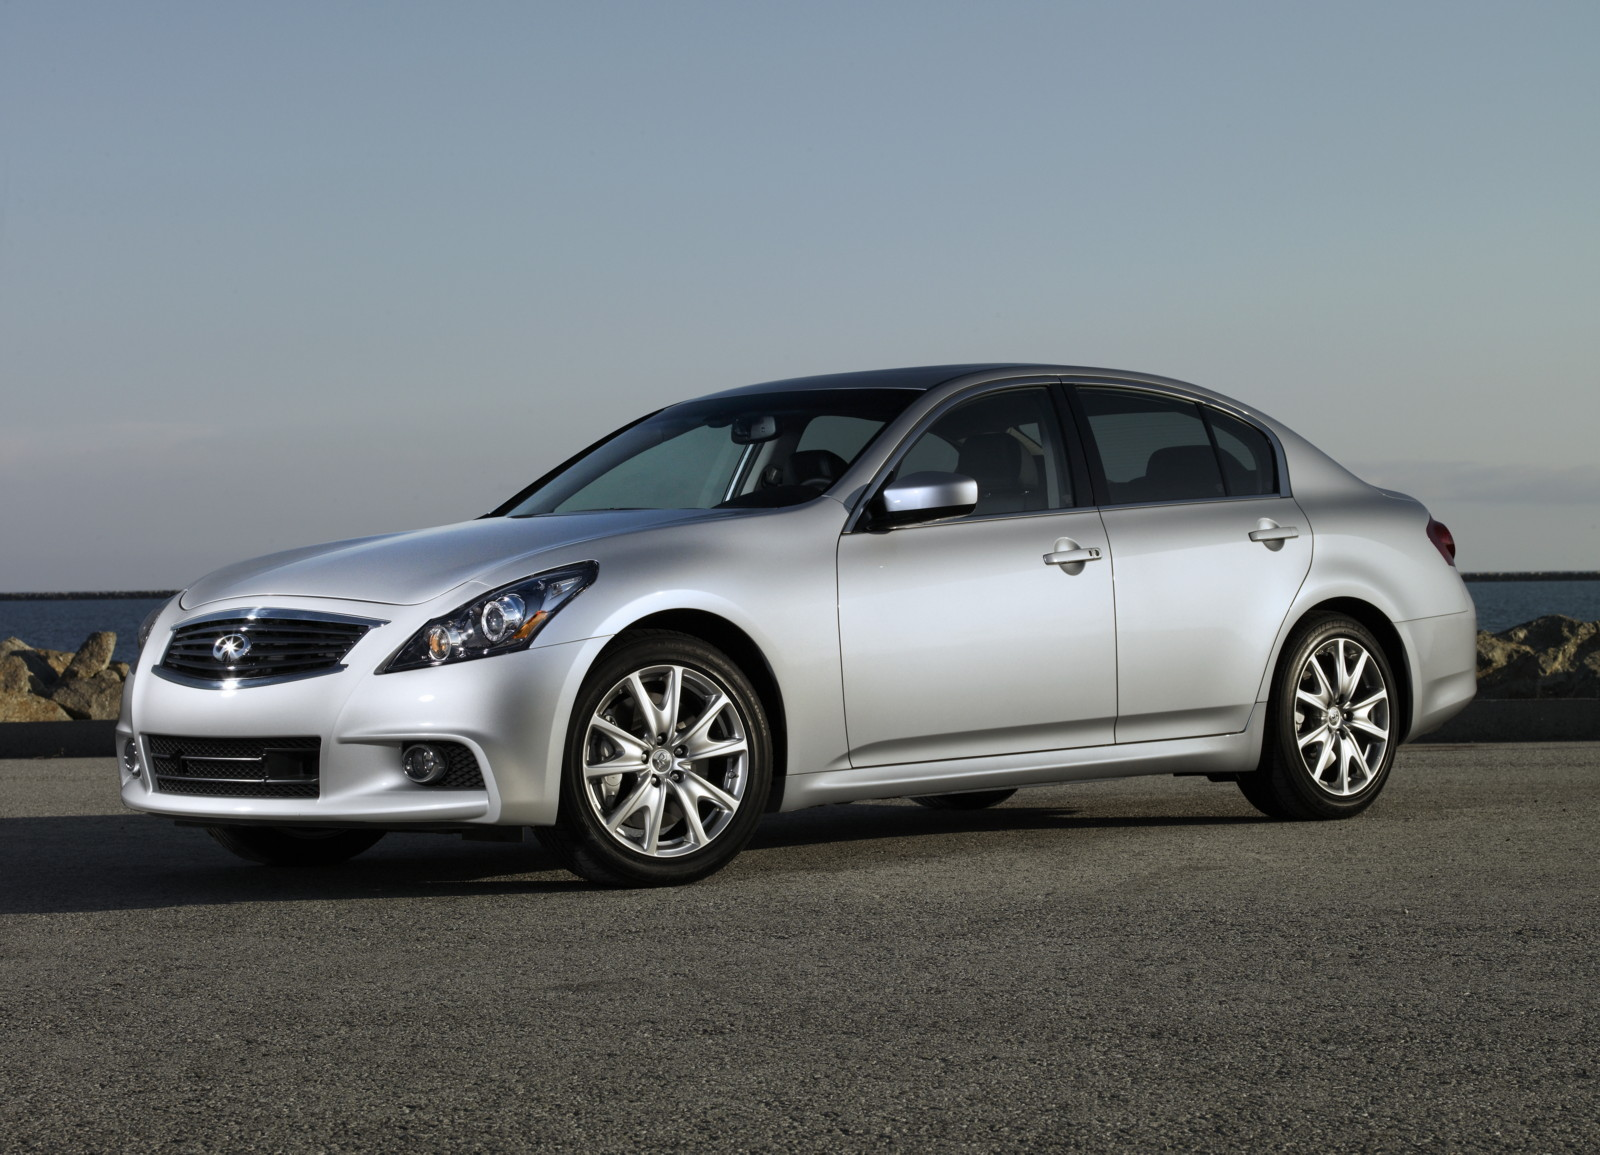 Miami Used Chevrolet >> 2010 Infiniti G37 Sedan Review, Ratings, Specs, Prices, and Photos - The Car Connection